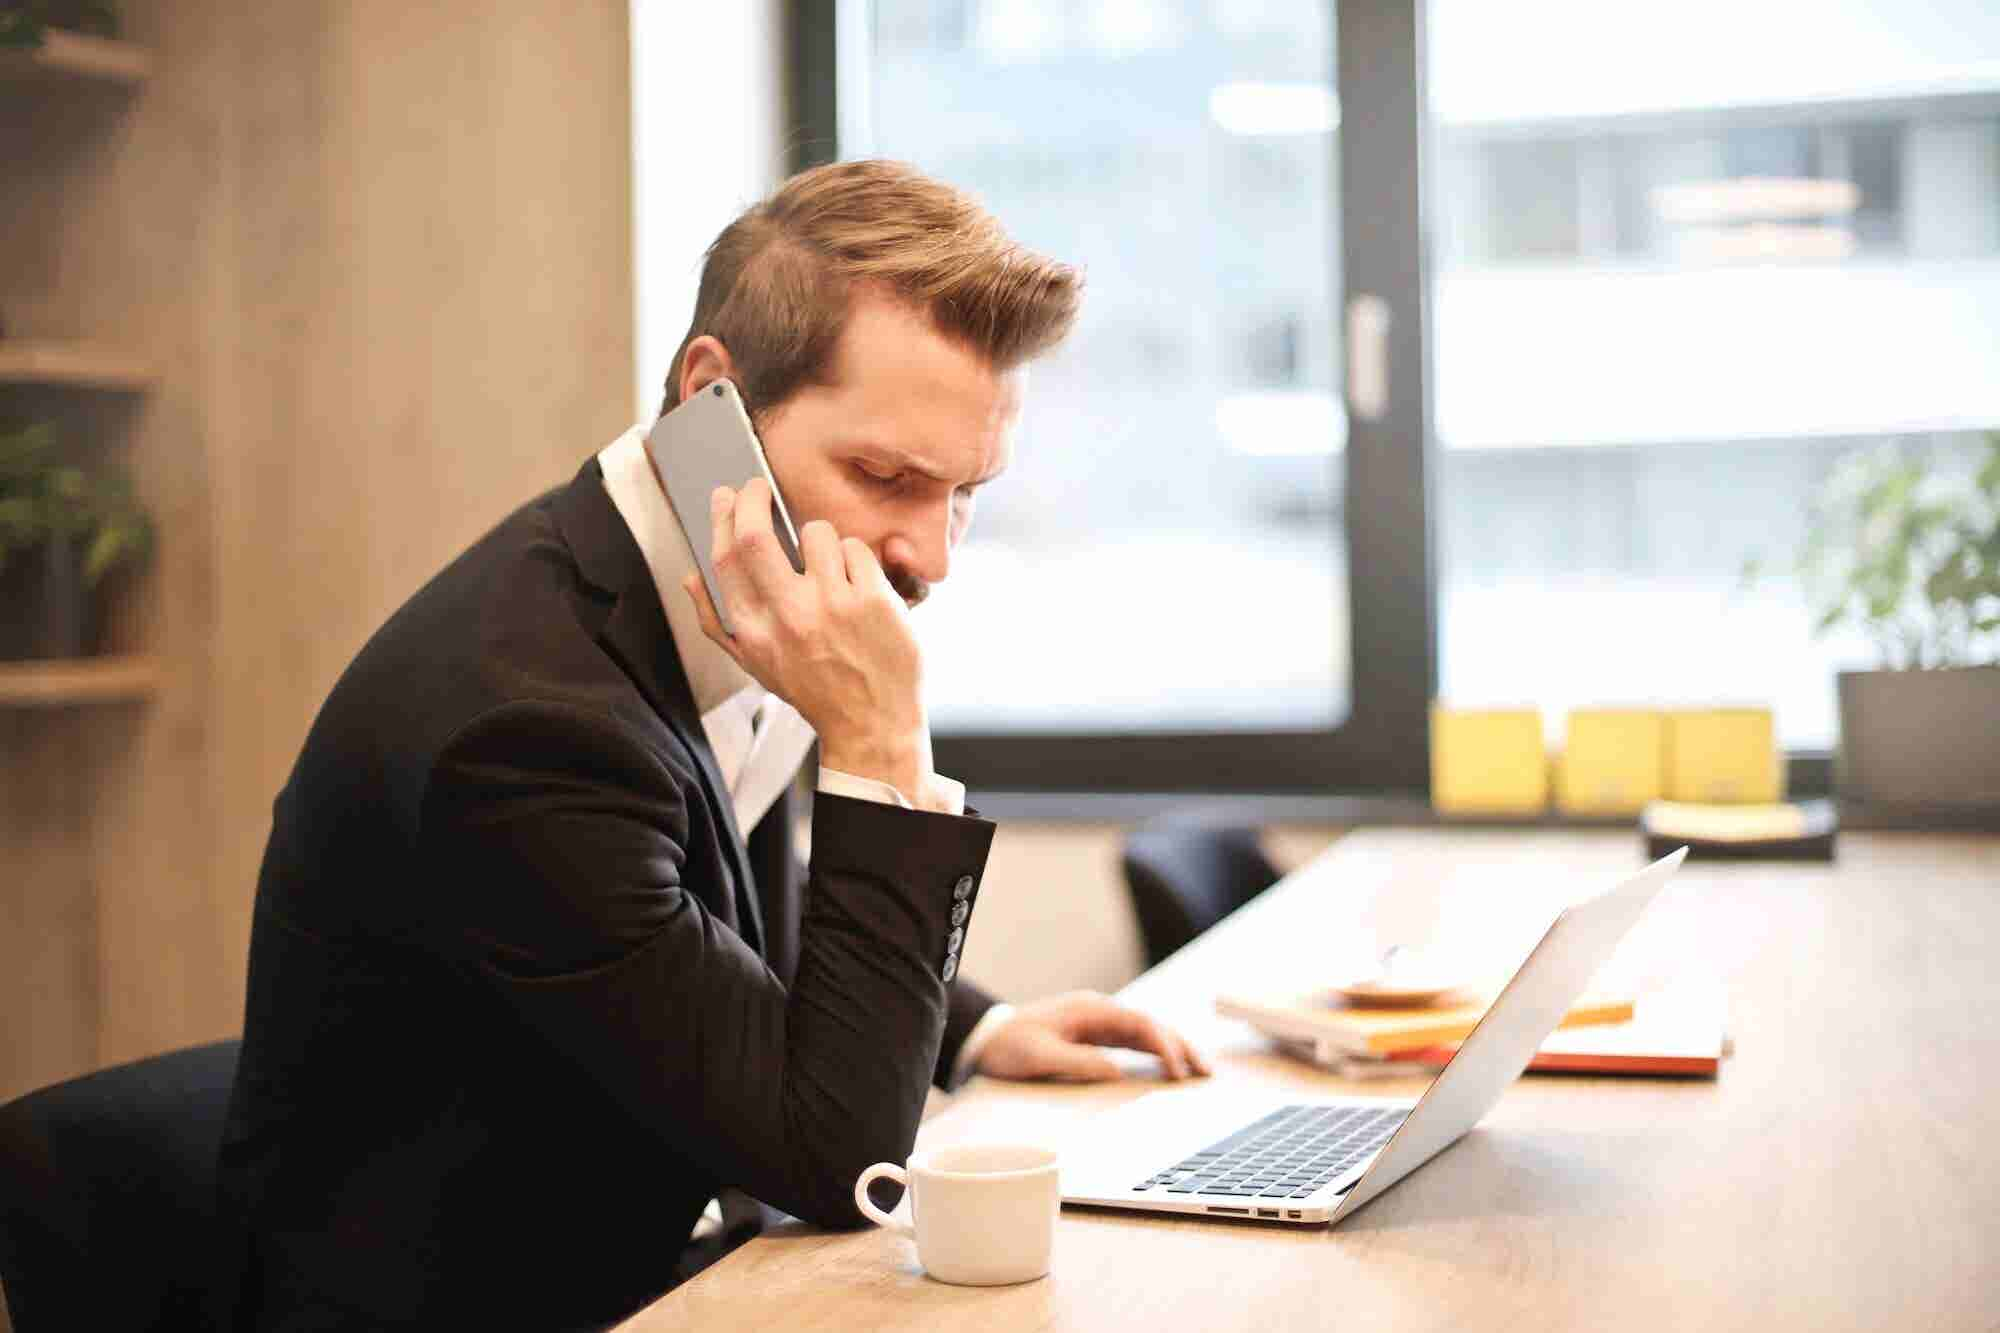 Stop Annoying Robocalls During Work With This Well-Reviewed App